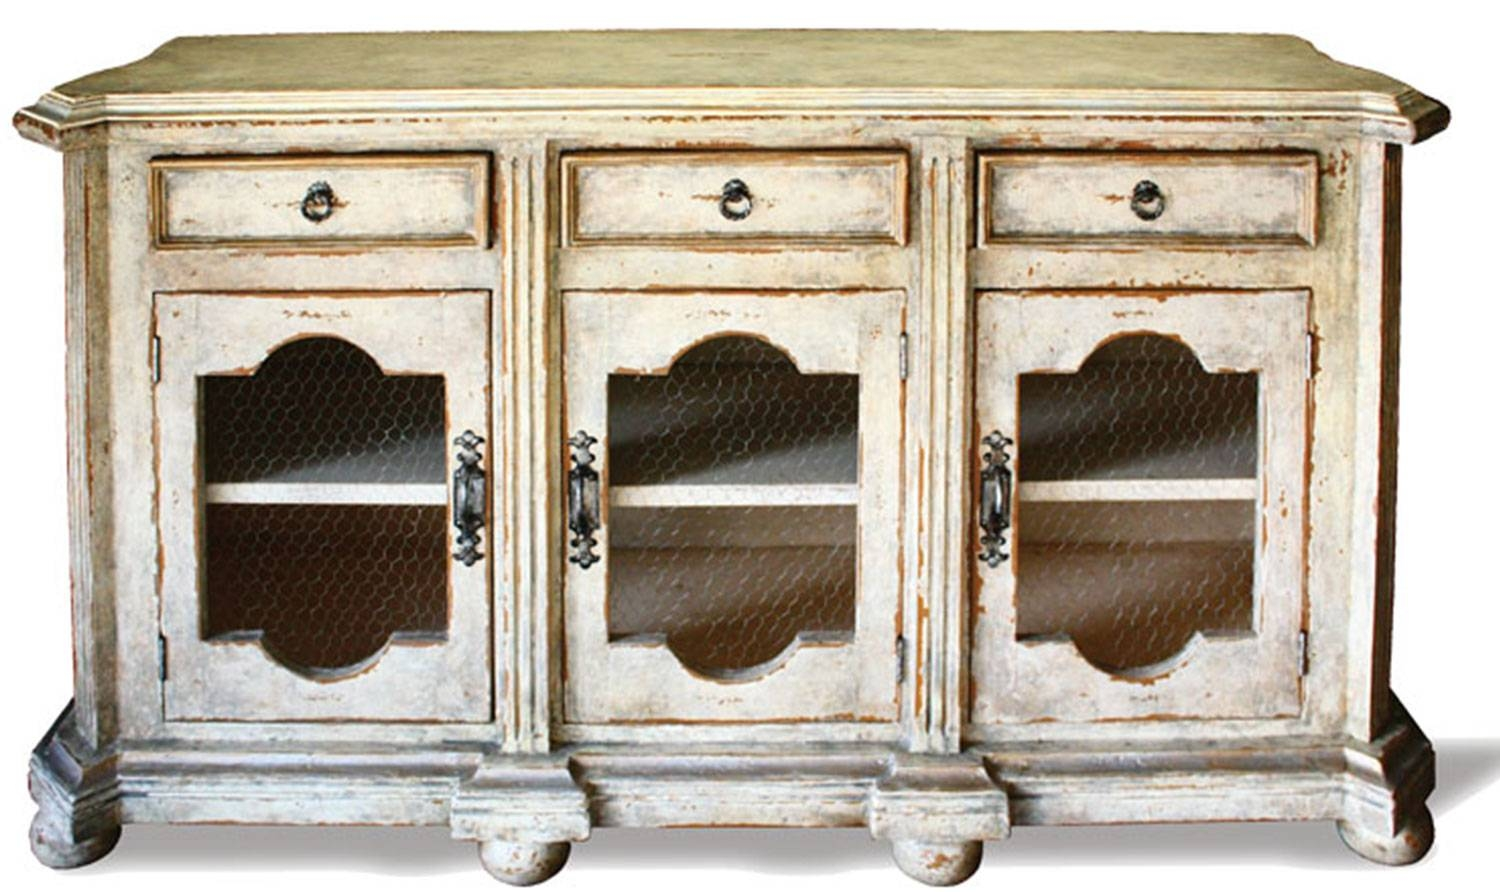 French Country Sideboard Belle Noir Grey | The Koenig Collection inside French Country Sideboards (Image 12 of 30)